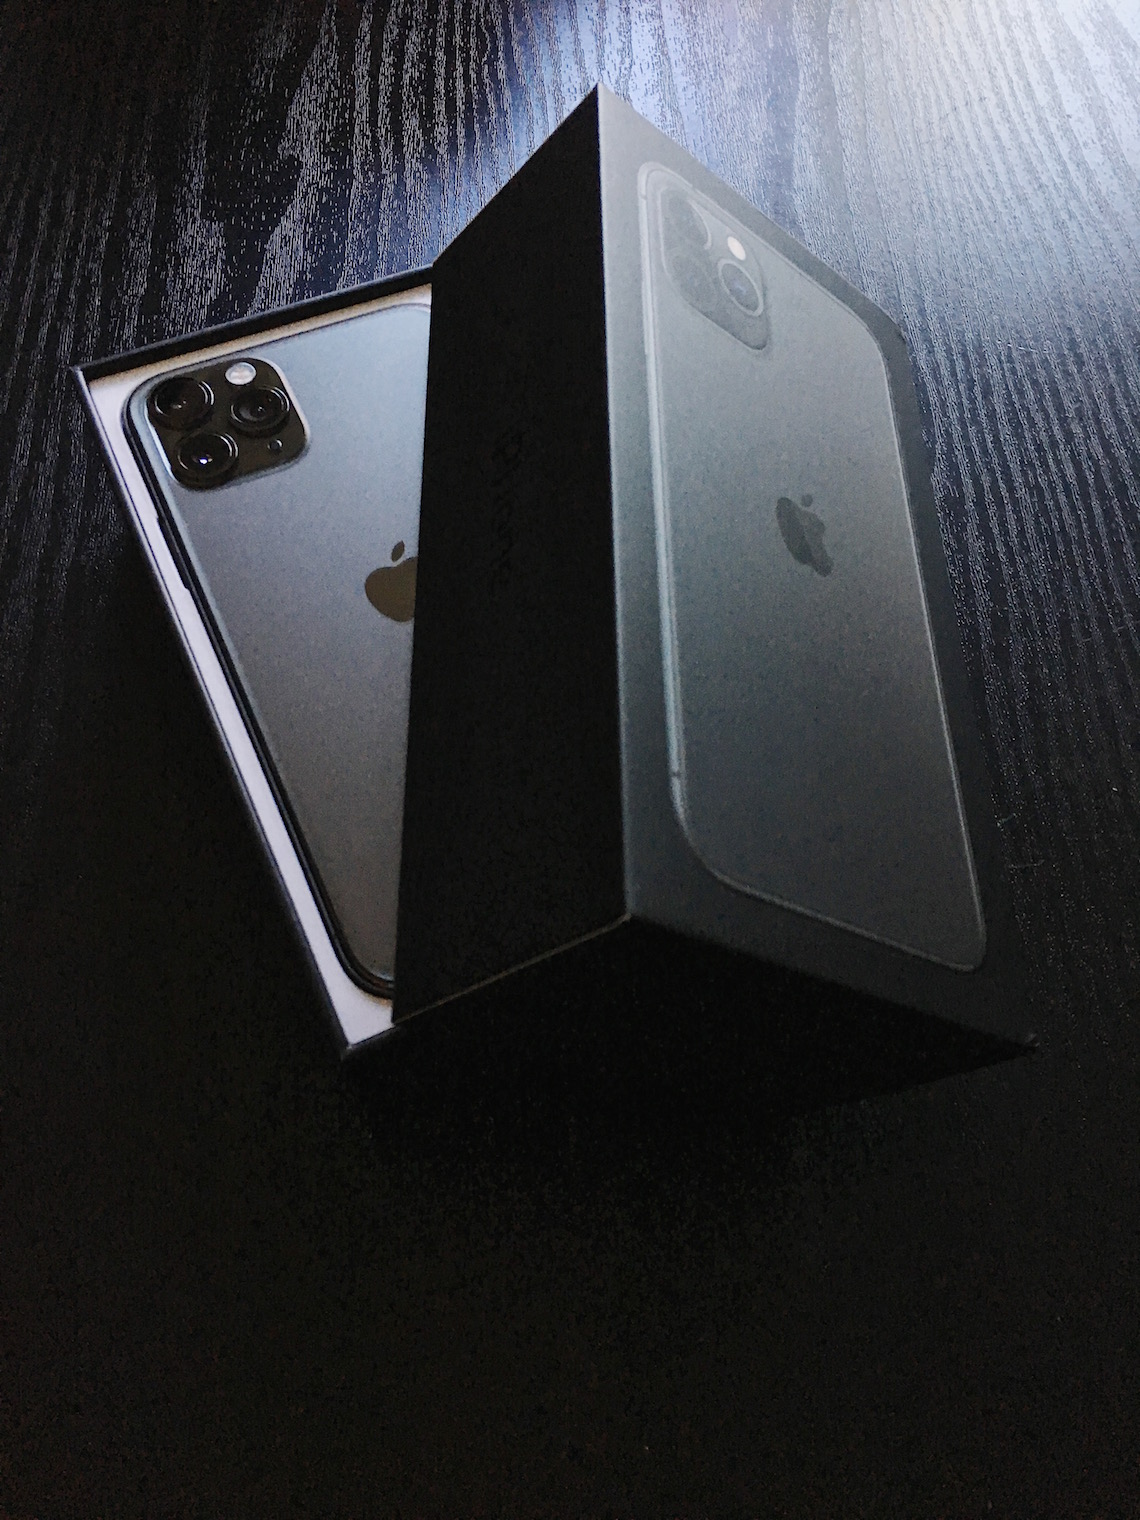 iphone 11 pro review-content creator-camera phone